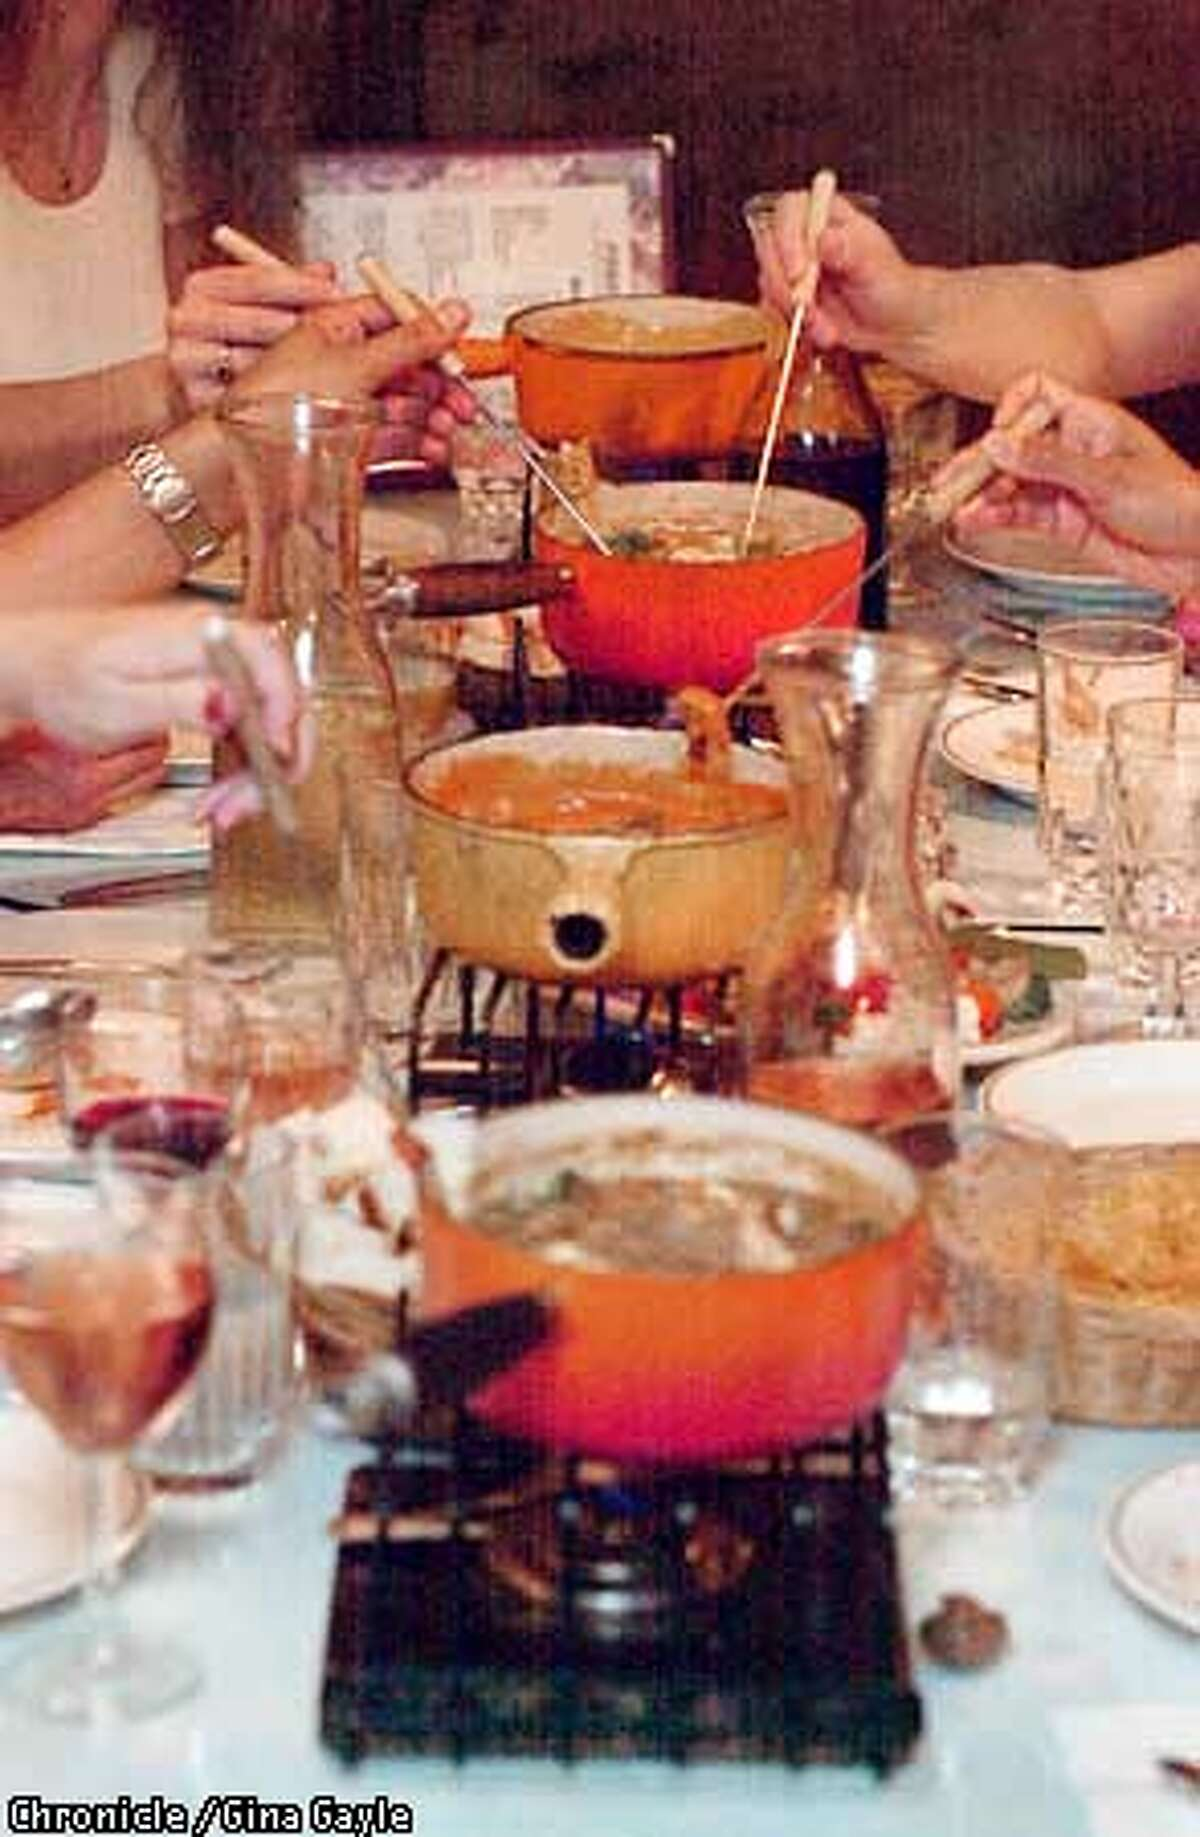 A variety of fondues are presented for dinner at Fondue Fred's in Berkeley.